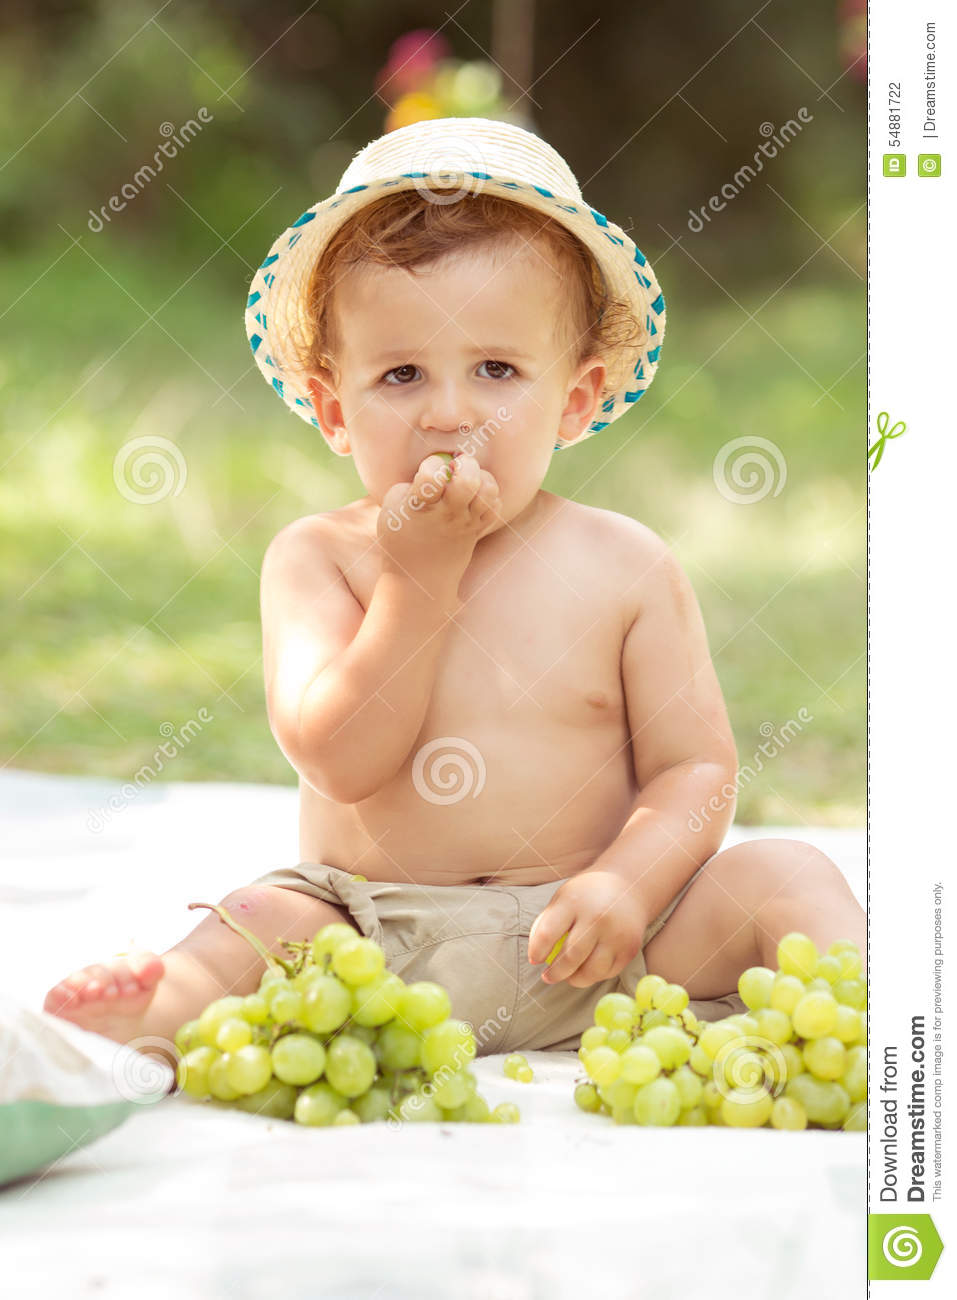 Toddler eating grapes